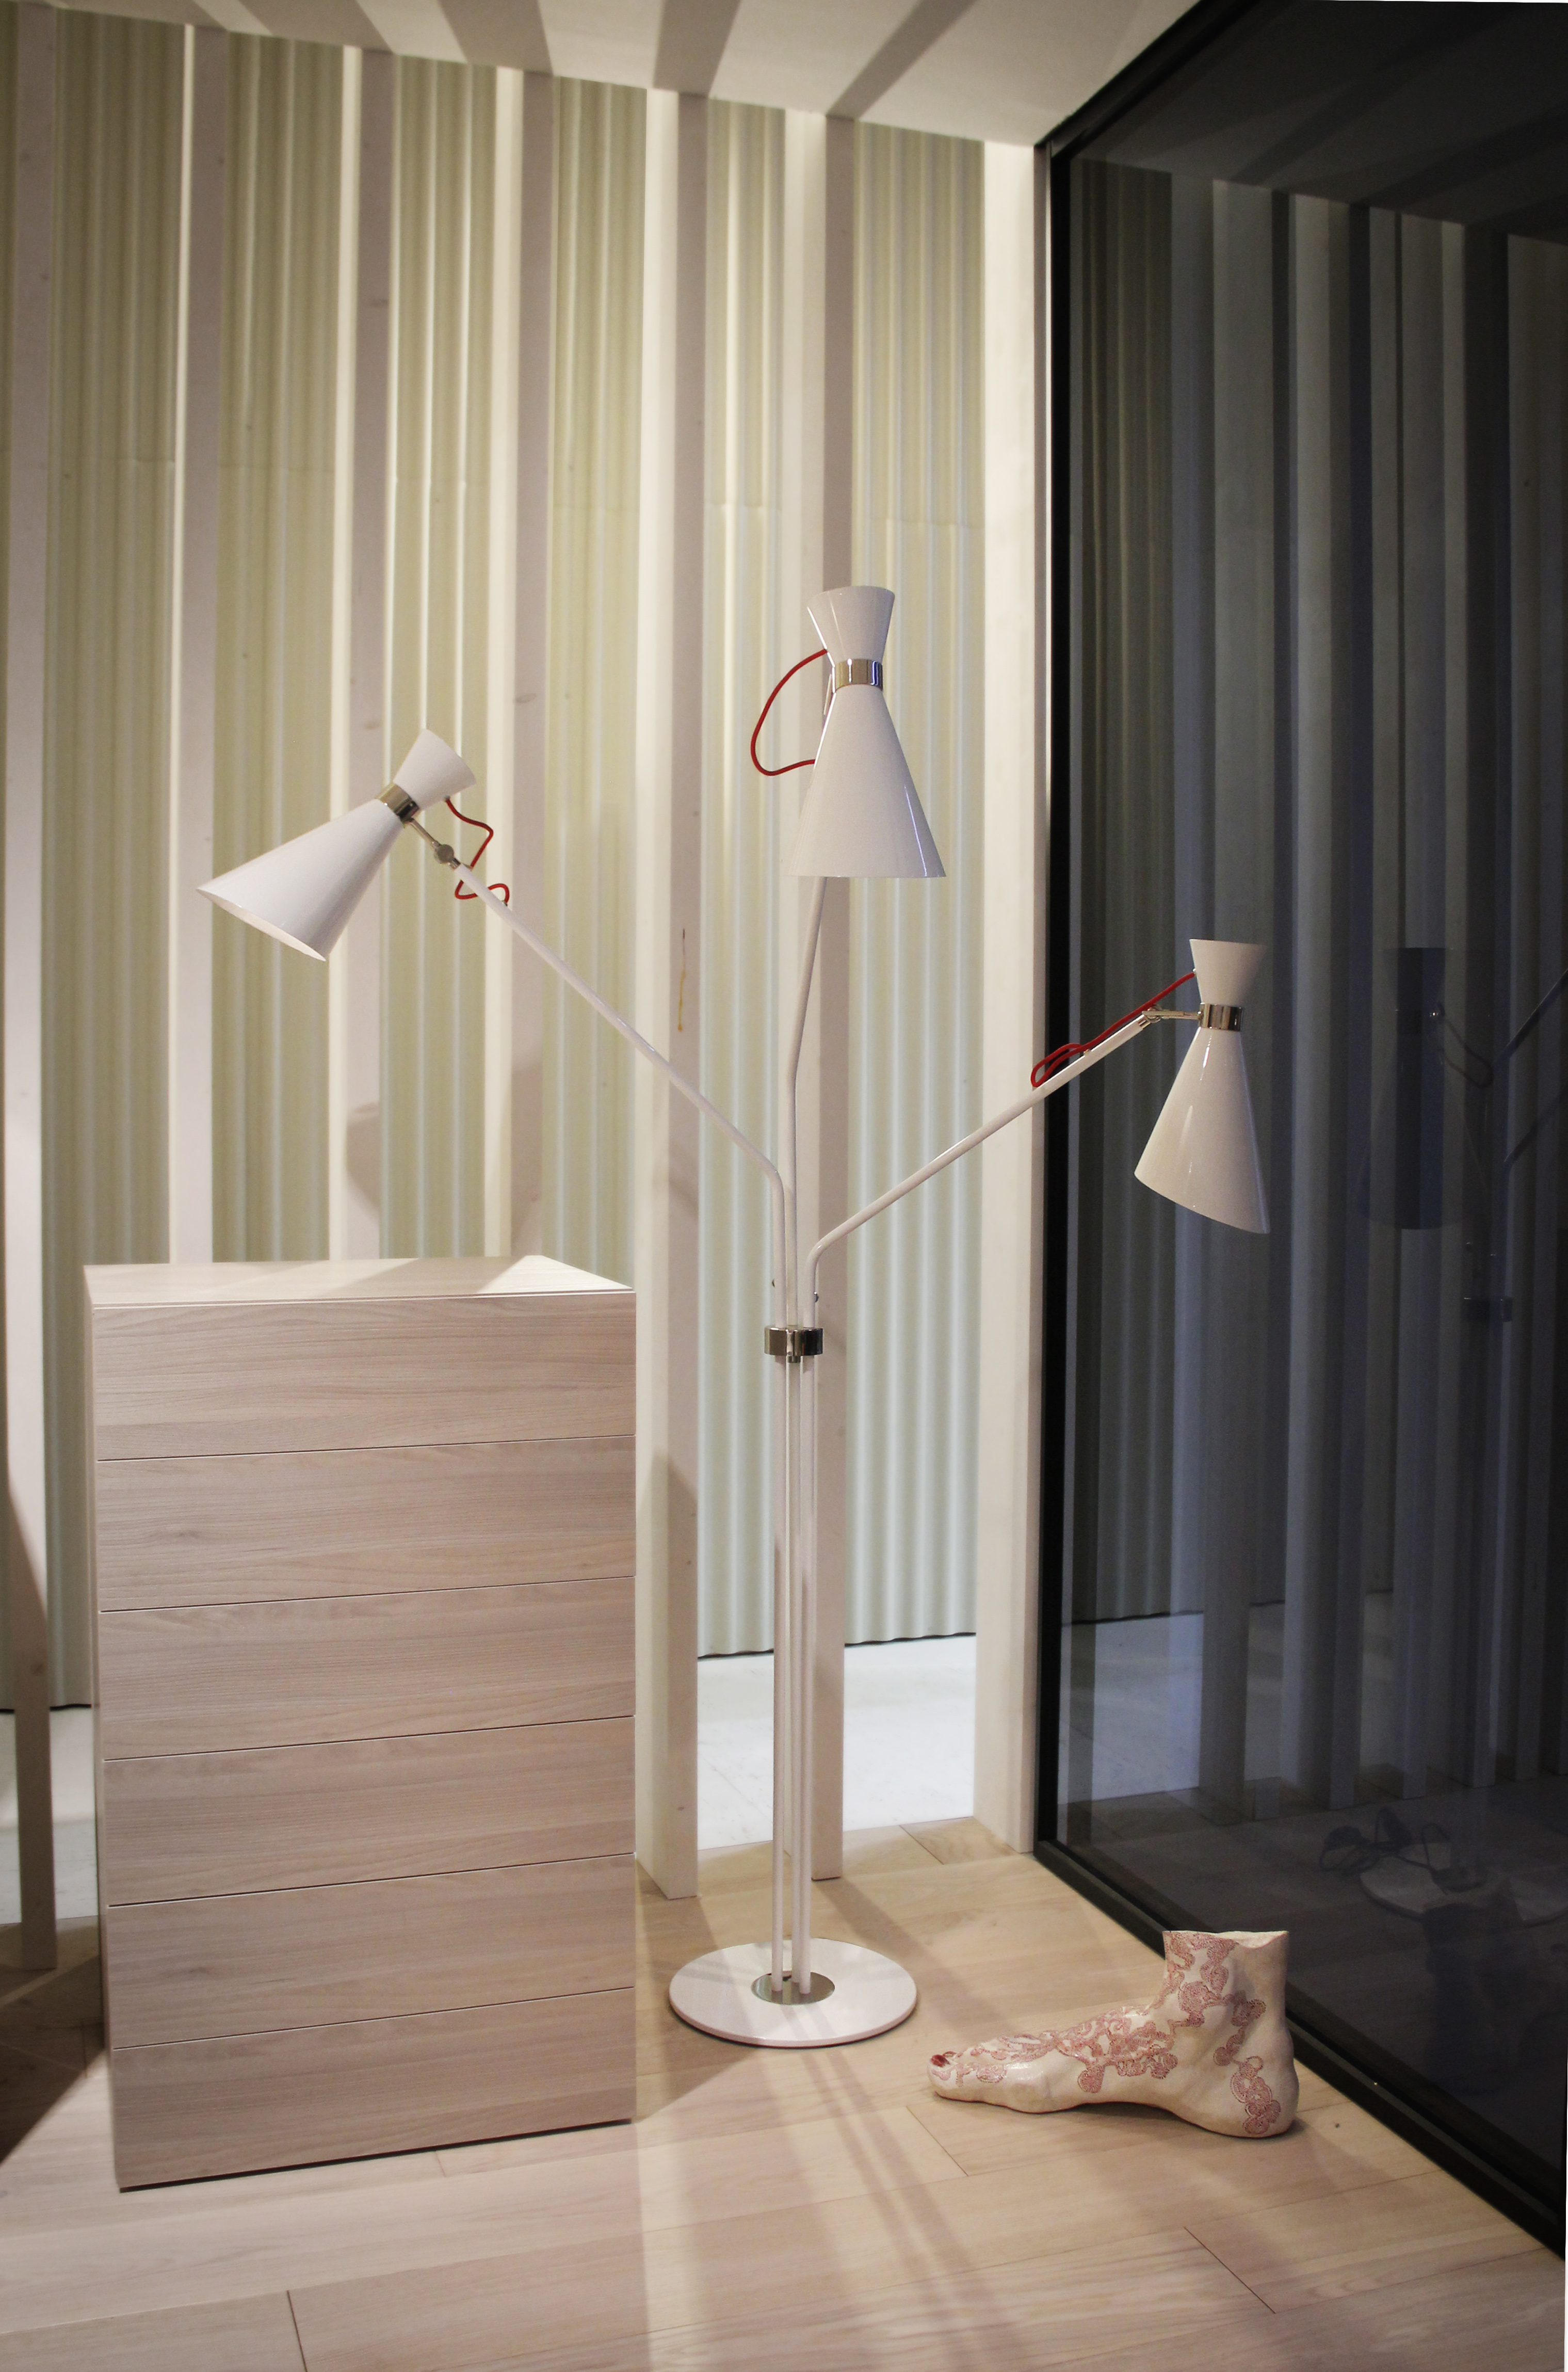 Remodel your home with white floor lamps